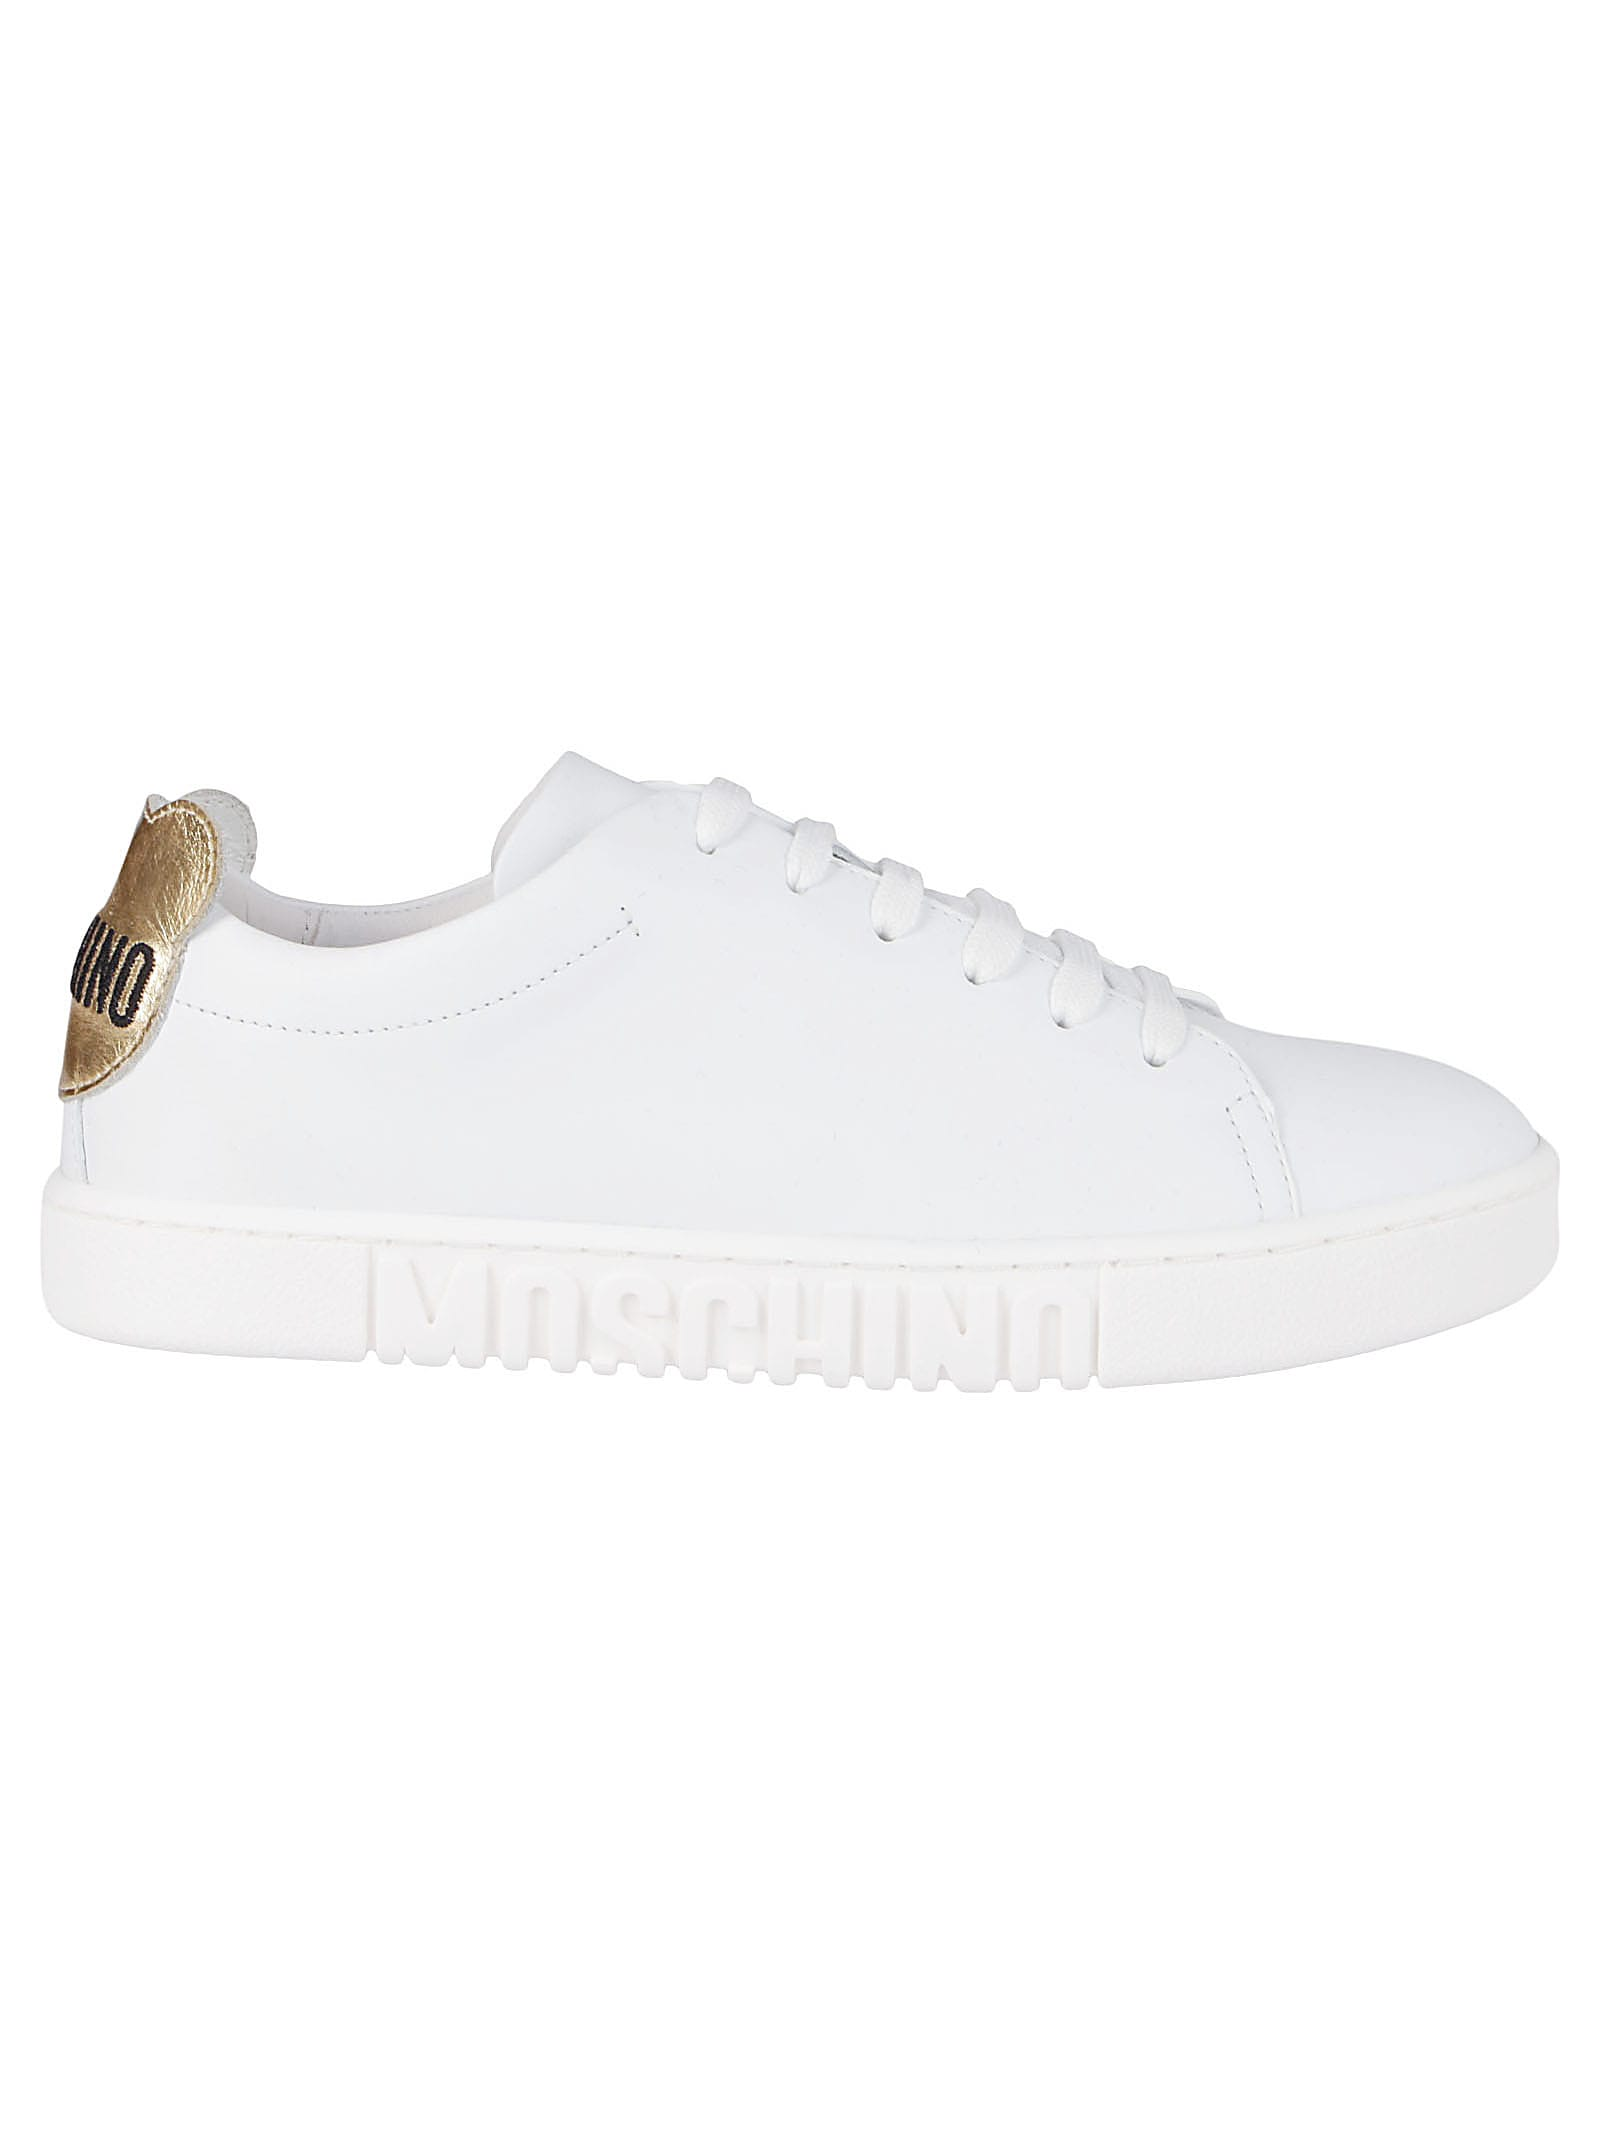 Moschino WHITE LEATHER TEDDY BEAR SNEAKERS